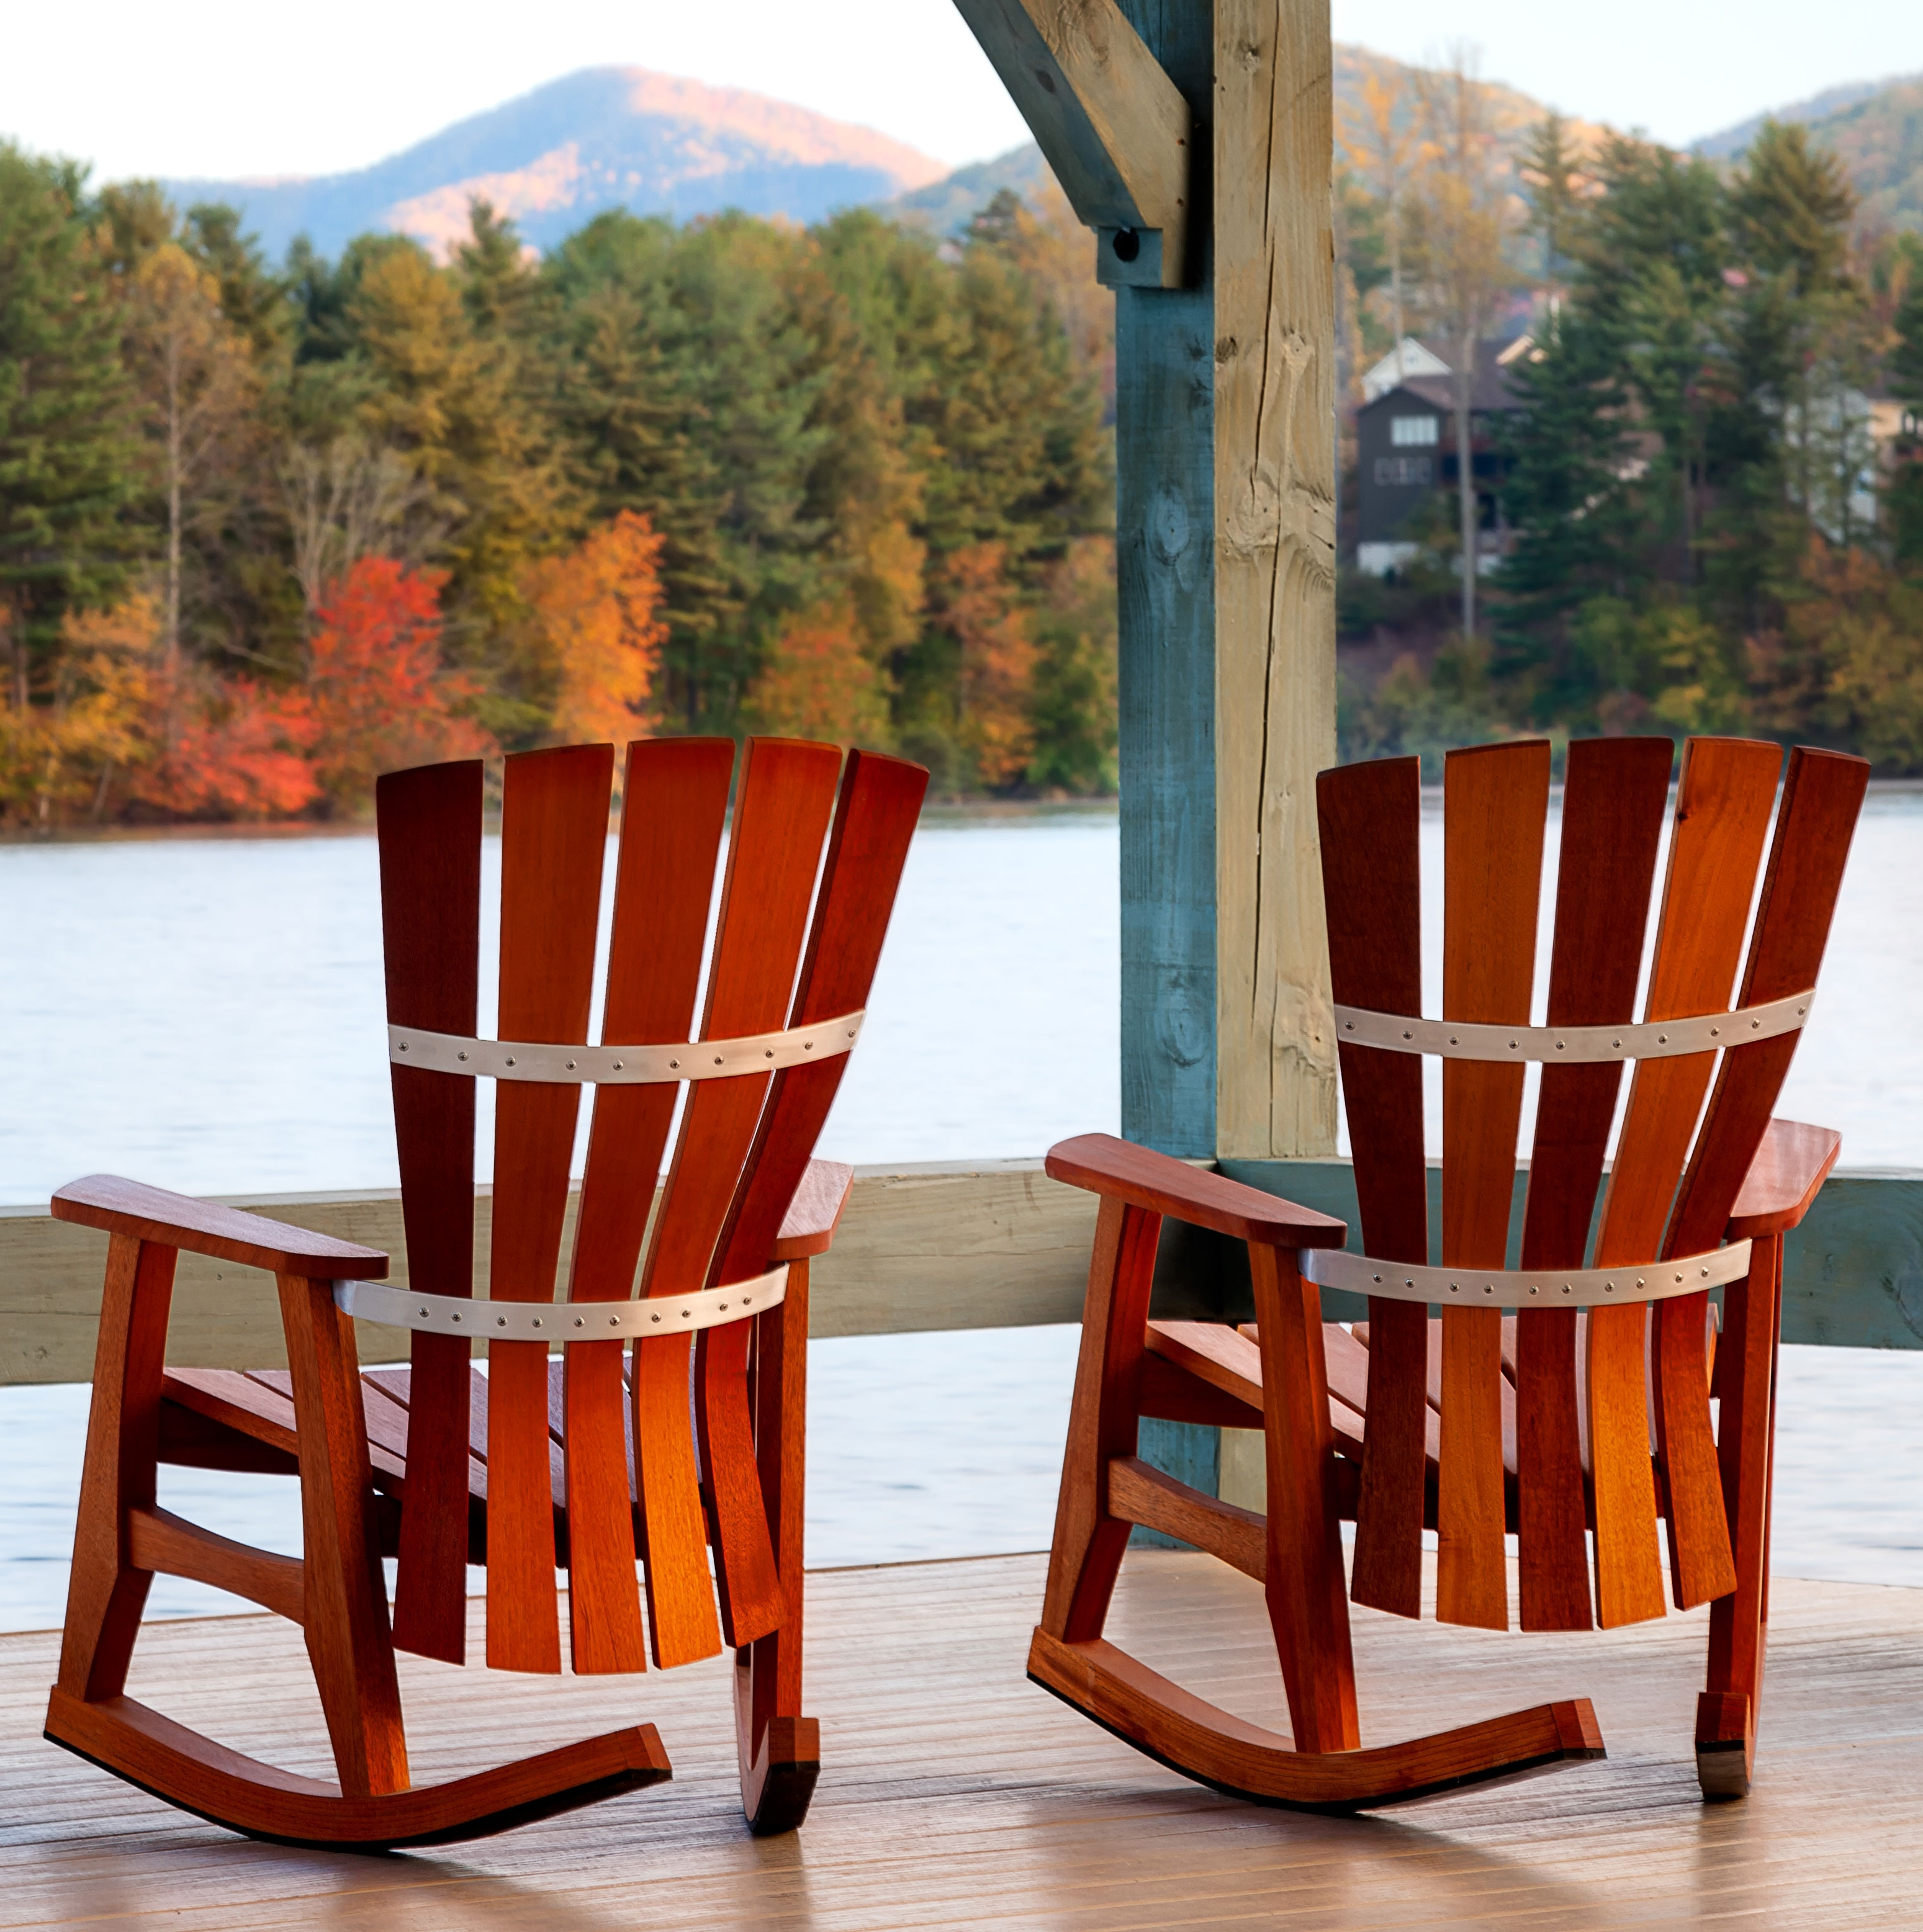 Rocking Chair Outdoor Wooden In Newest Best Finish For Outdoor Furniture Outdoor Designs From Best Stain (View 15 of 20)